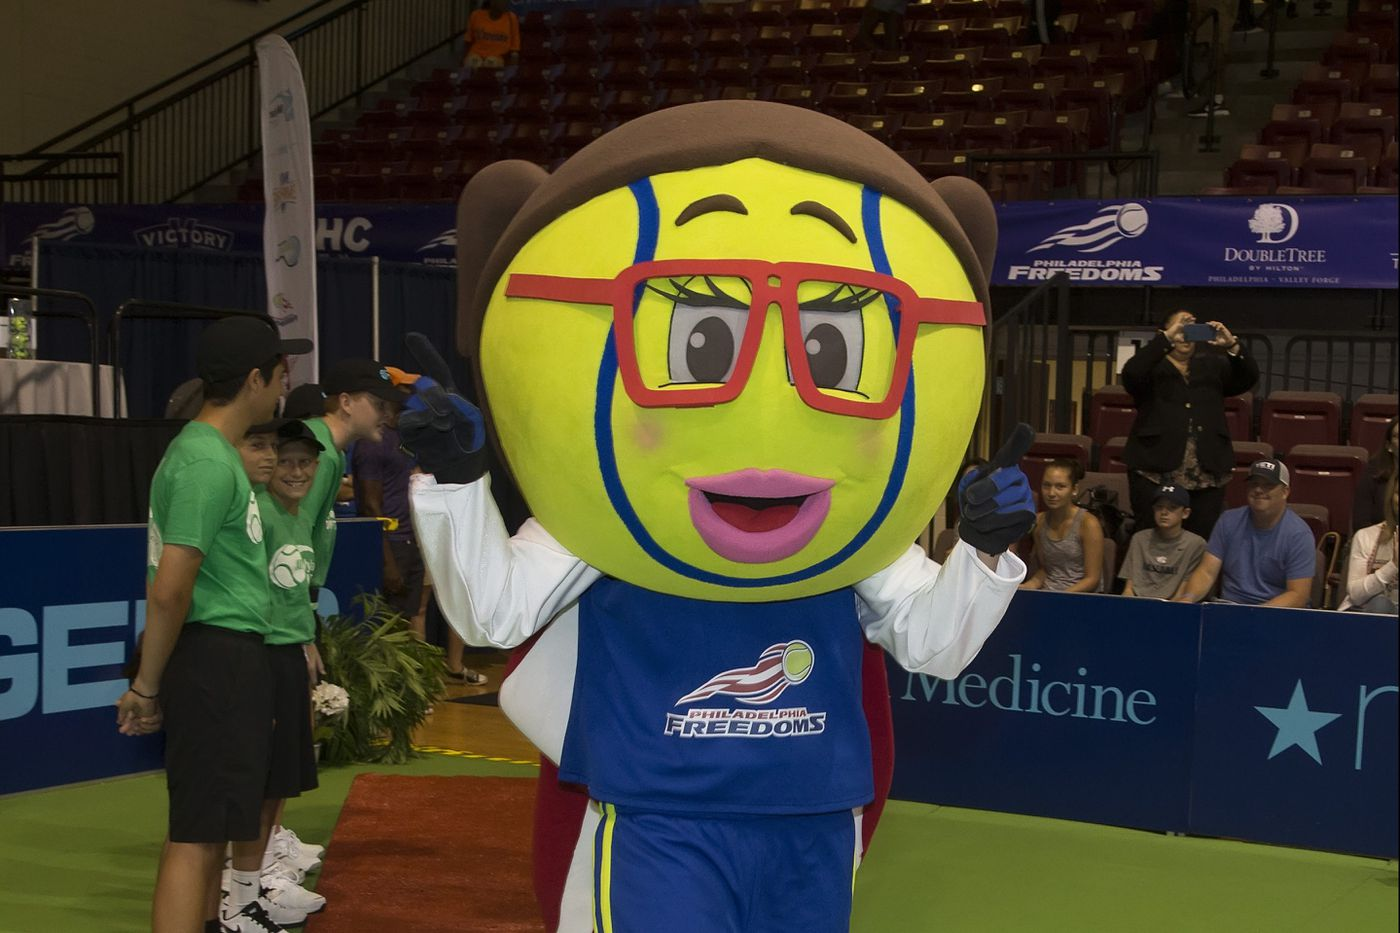 Freedoms missing mascot, Nettie, is found in time for Sunday's title match